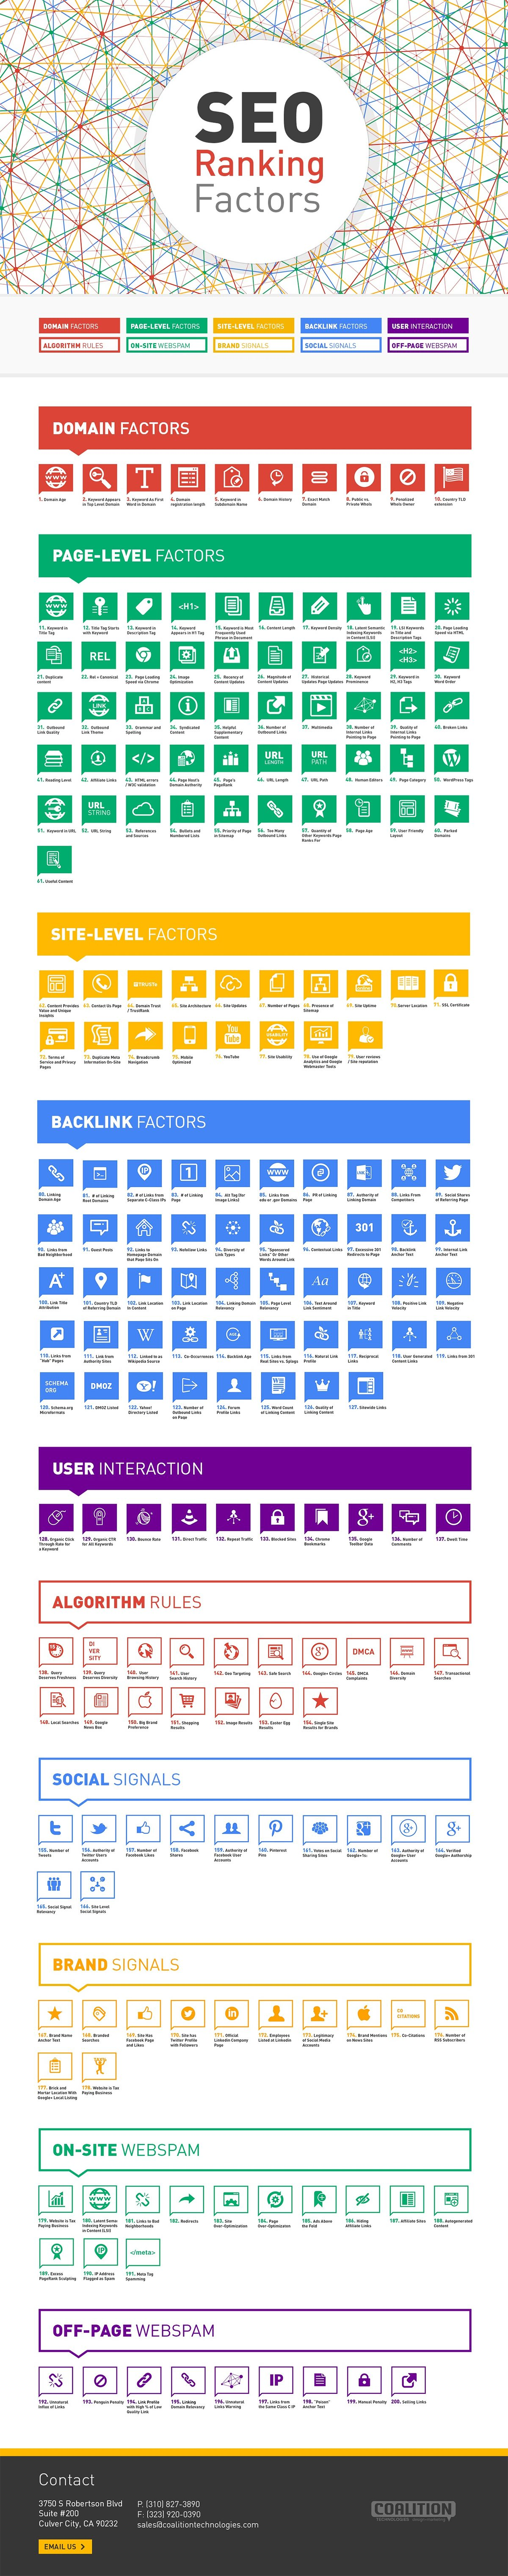 200 SEO Factors That Could Affect Your Position on Google [Infographic]